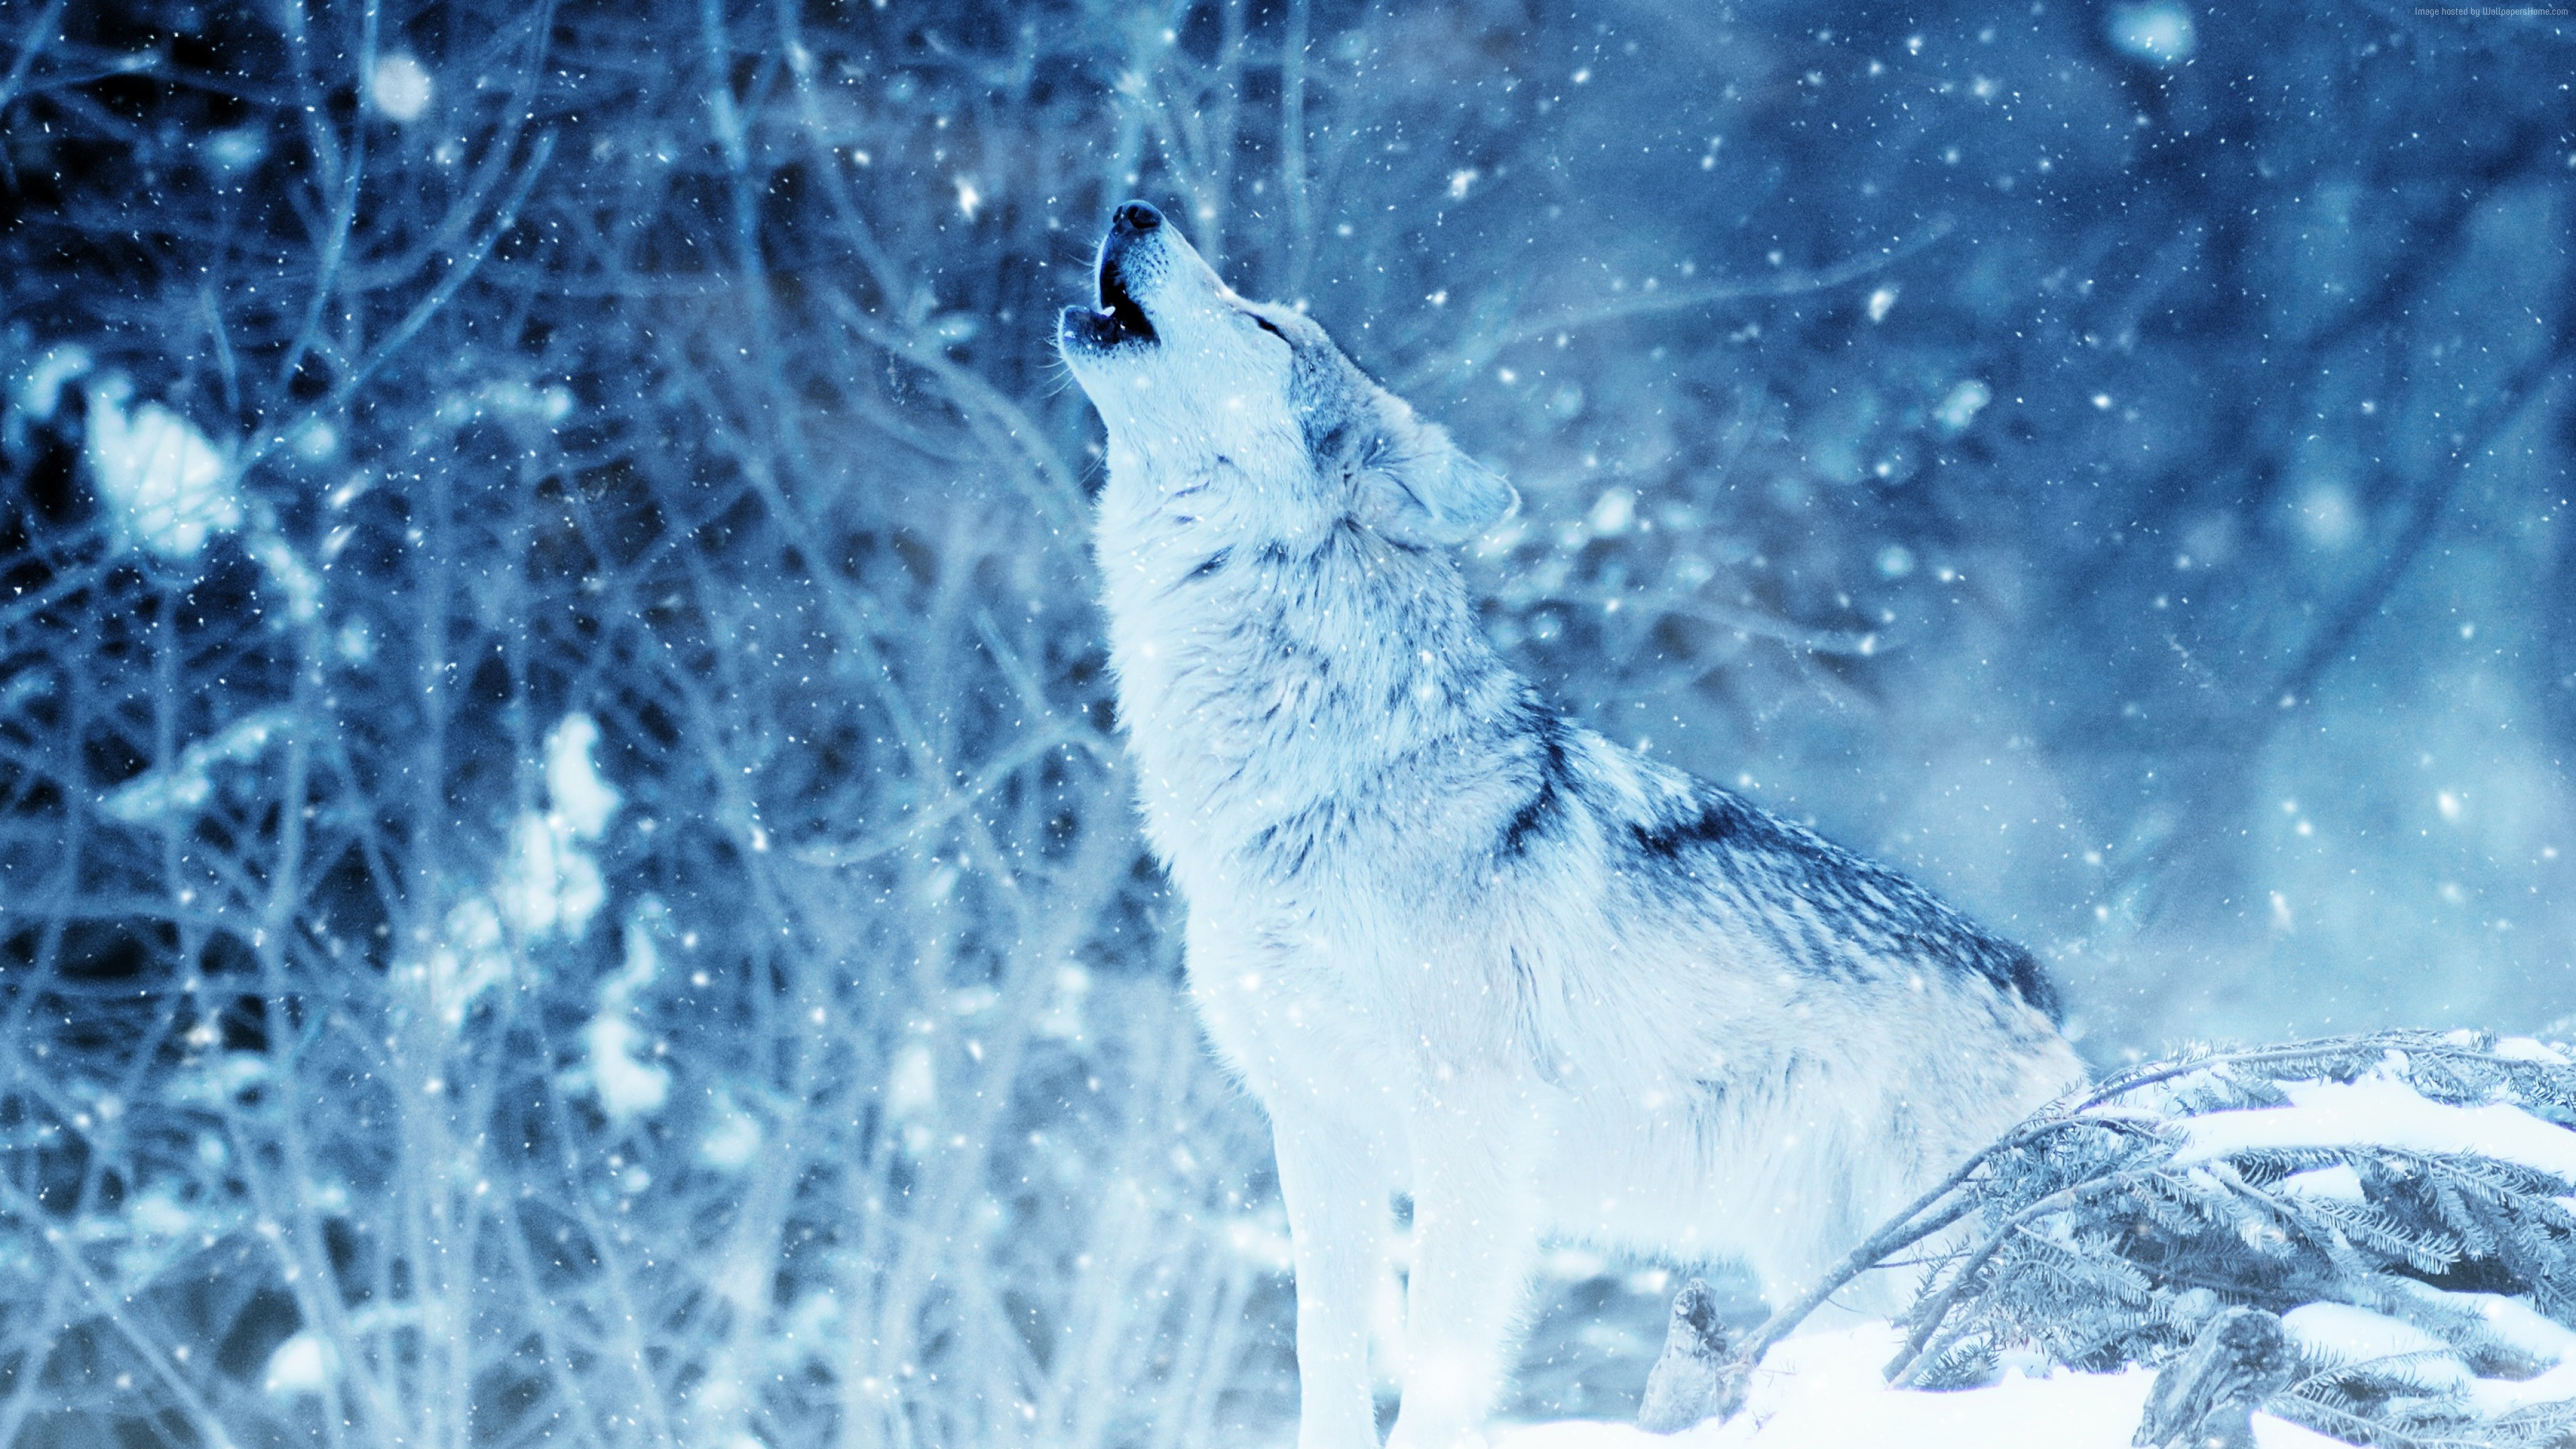 Stock Images Wolf Winter Snow 4k Stock Images Wallpaper Download High Resolution 4k Wallpaper